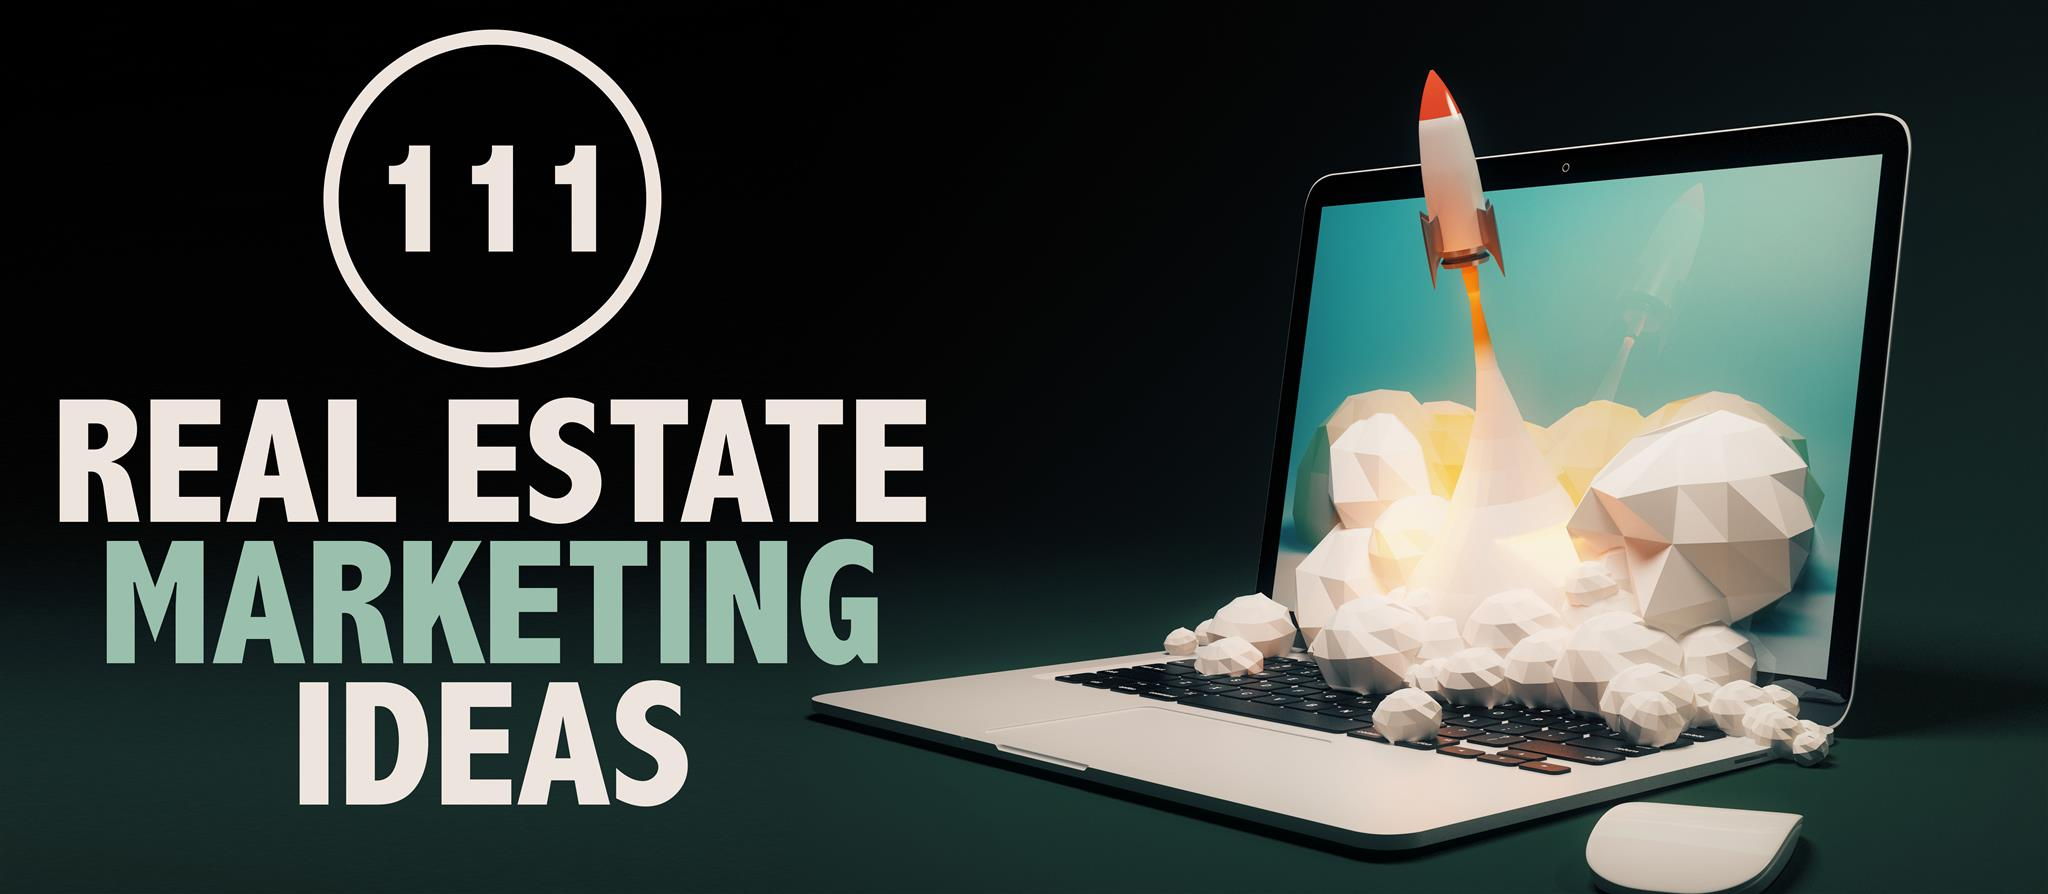 111 real estate marketing ideas that work in 2018